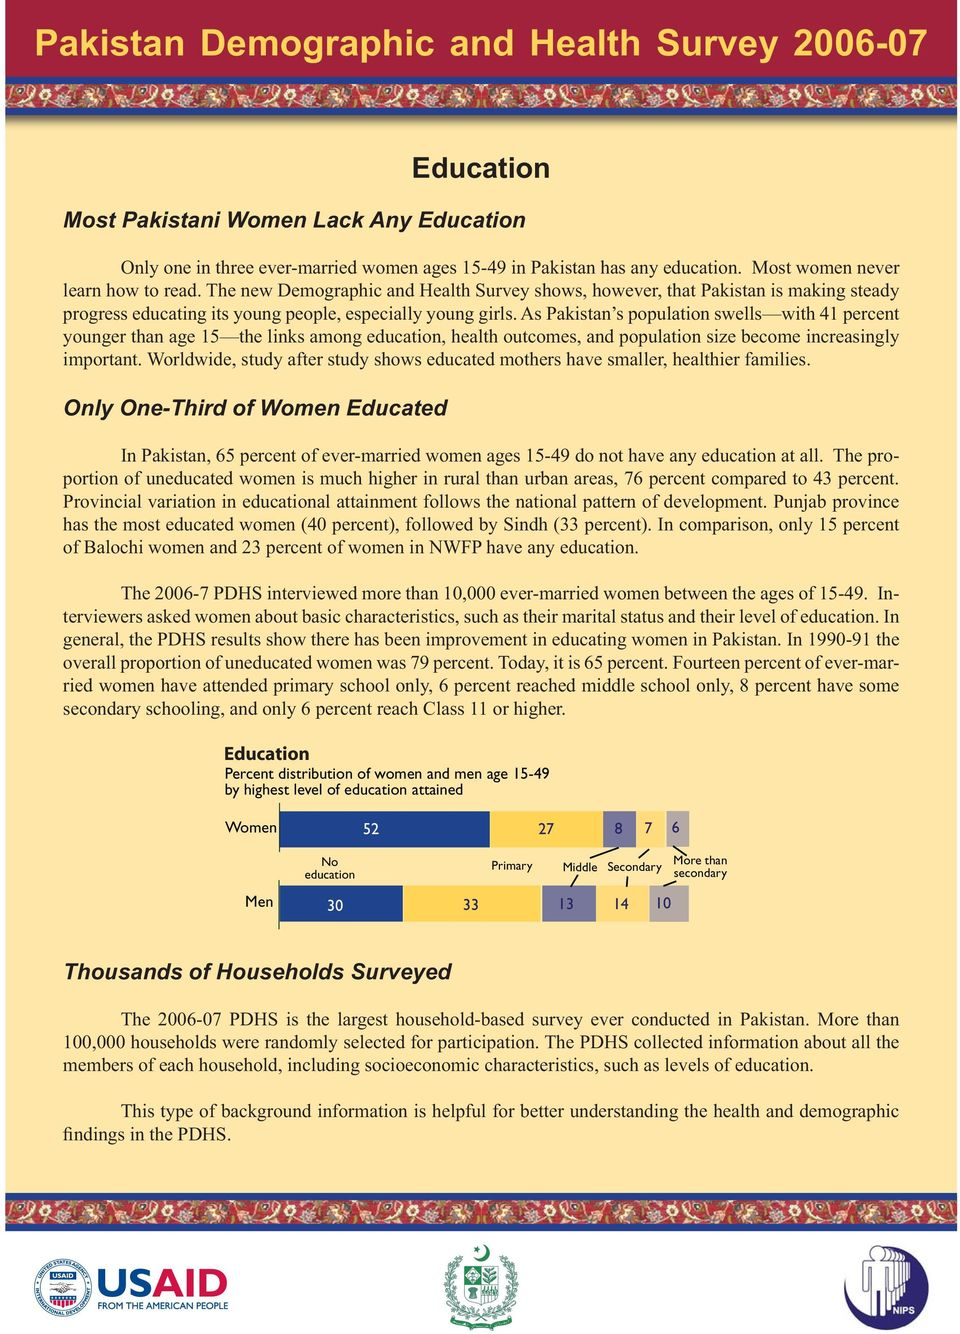 As Pakistan s population swells with 41 percent younger than age 15 the links among education, health outcomes, and population size become increasingly important.